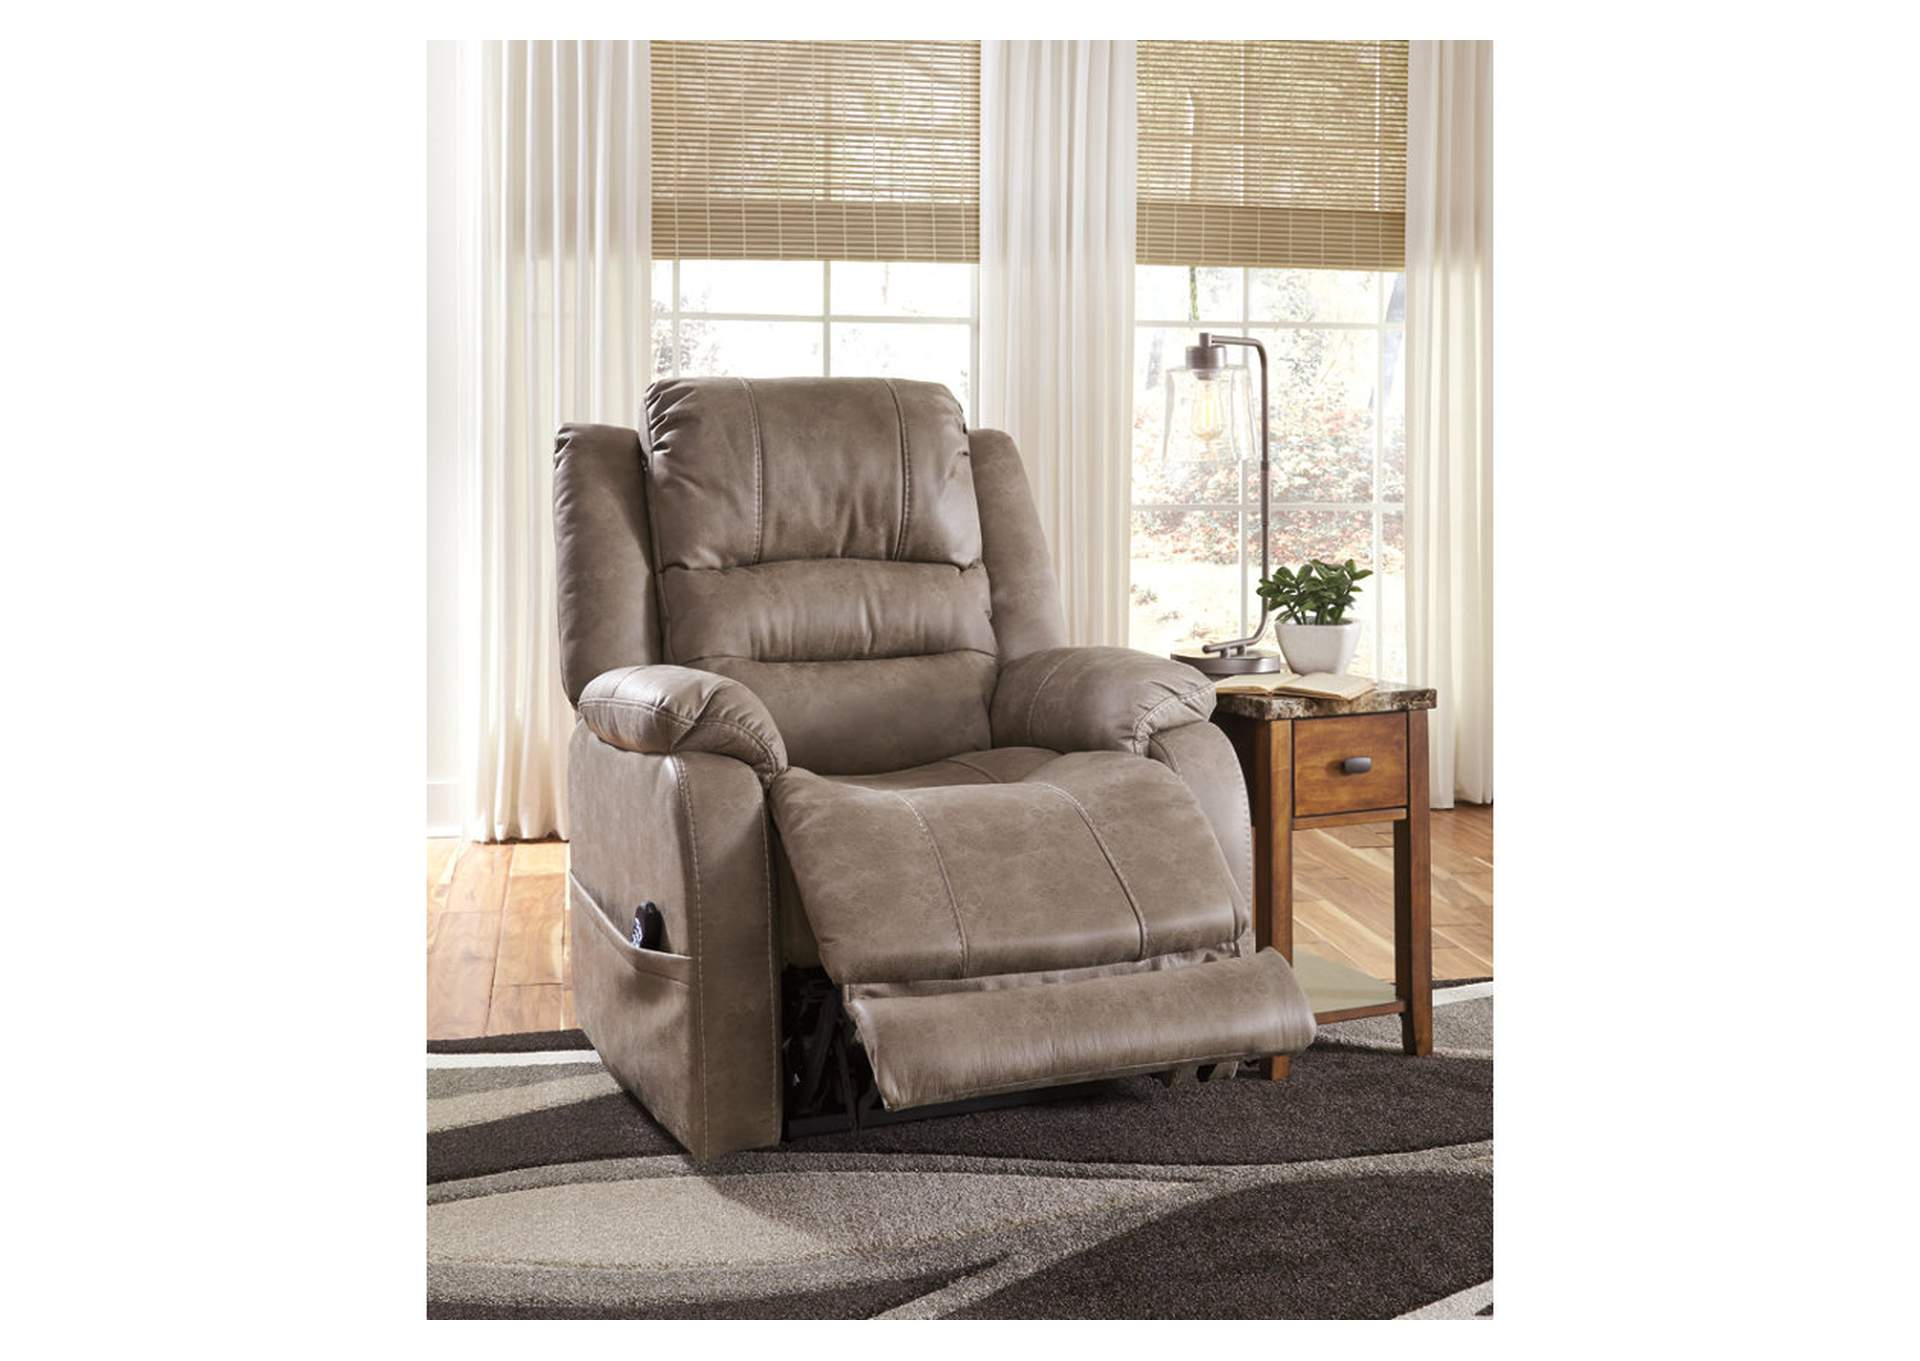 Barling Mushroom Power Recliner w/Adjustable Headrest,Signature Design By Ashley